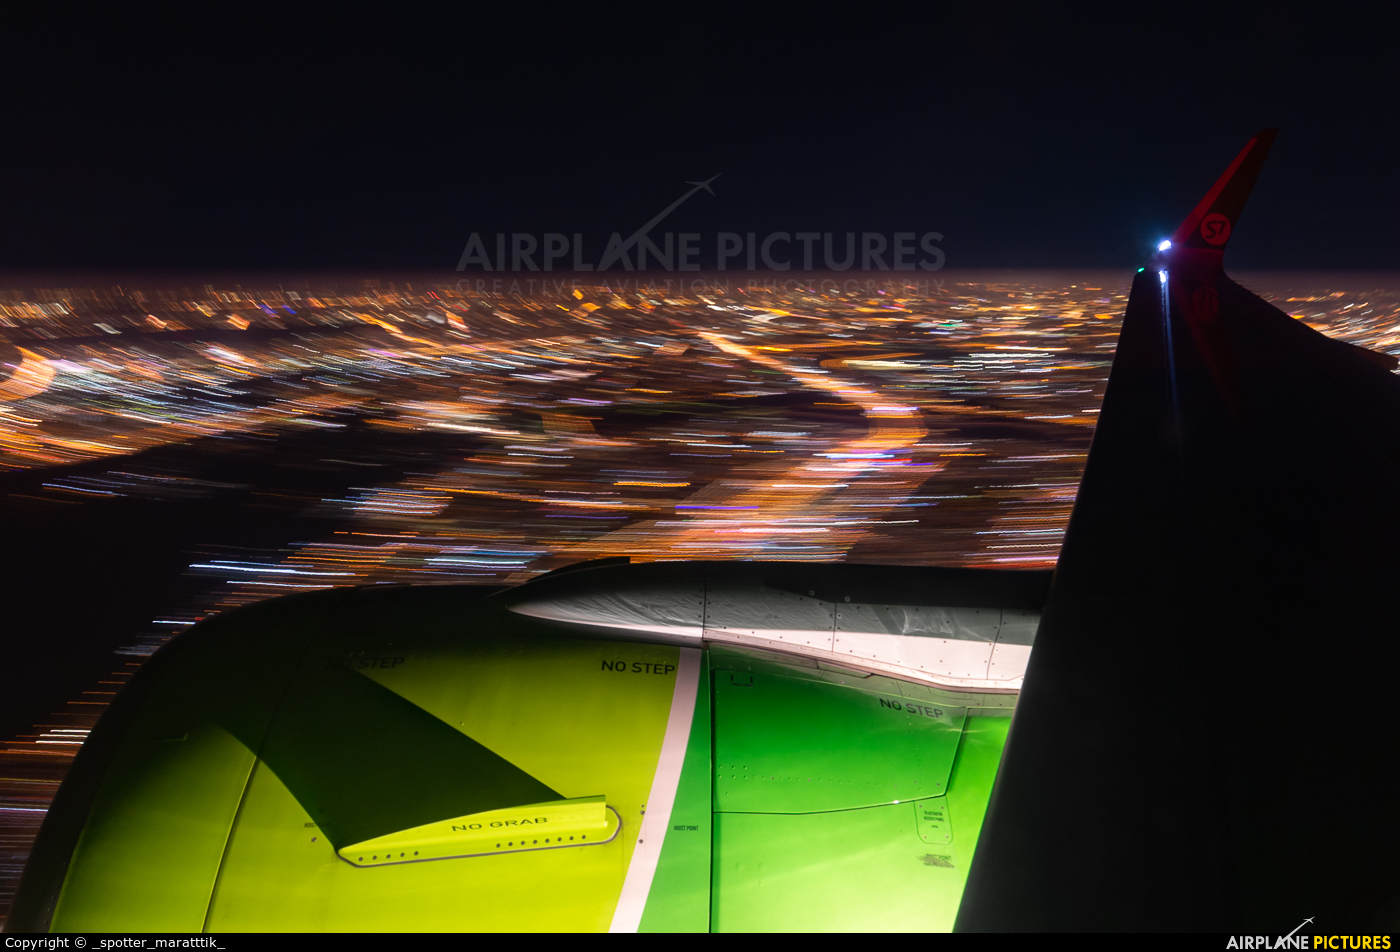 S7 Airlines VQ-BCF aircraft at In Flight - Russia